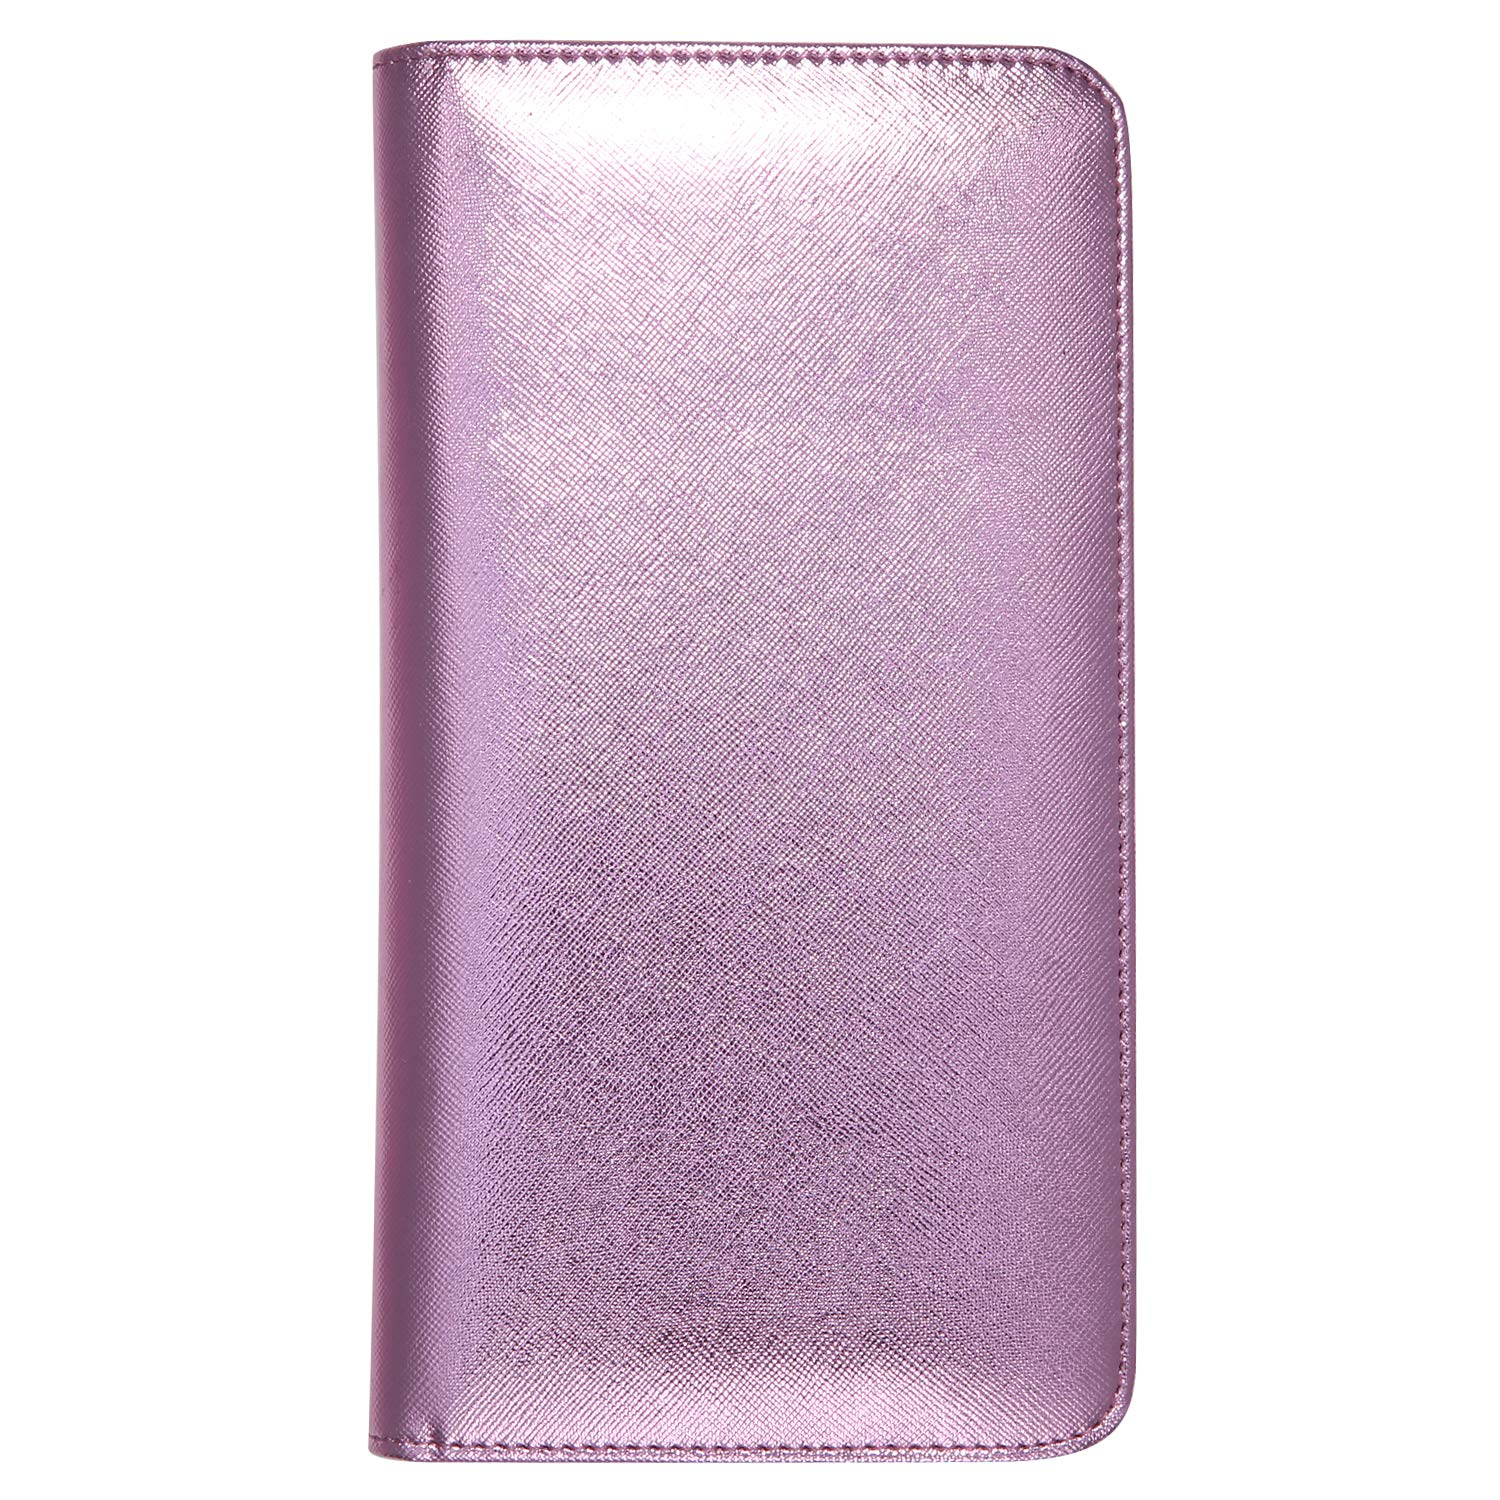 Mymazn Pink Server Book for Waitress Book with Zipper Pocket Server Wallet with Money Pocket and Zipper Pouch Restaurant Waitstaff Organizer, Guest Check Book Holder Money Pocket Fit Server Apron by Mymazn (Image #4)